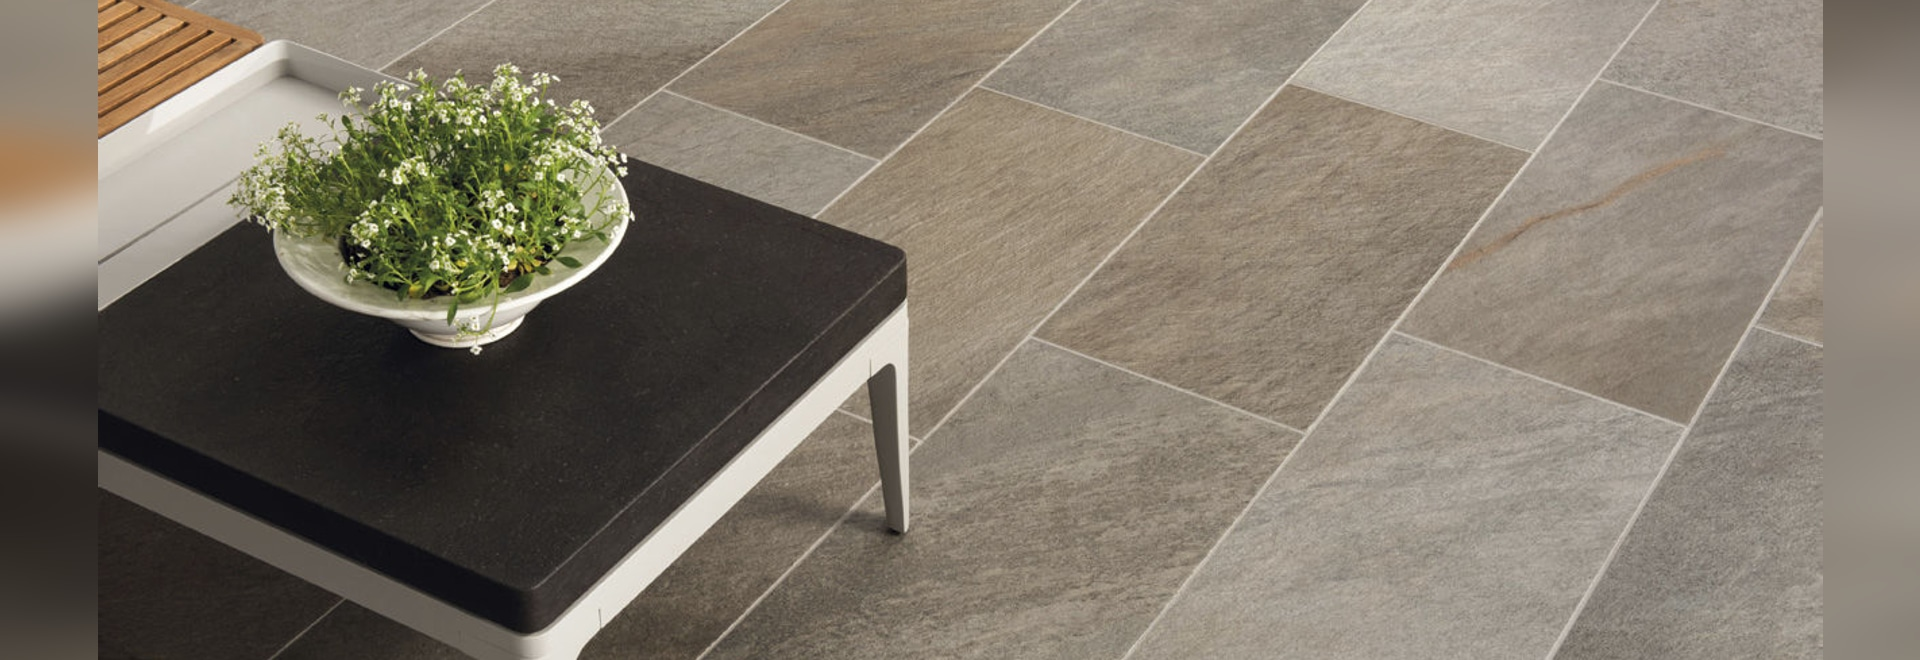 oint by Ceramiche Keope, when your lifestyle continues outdoors